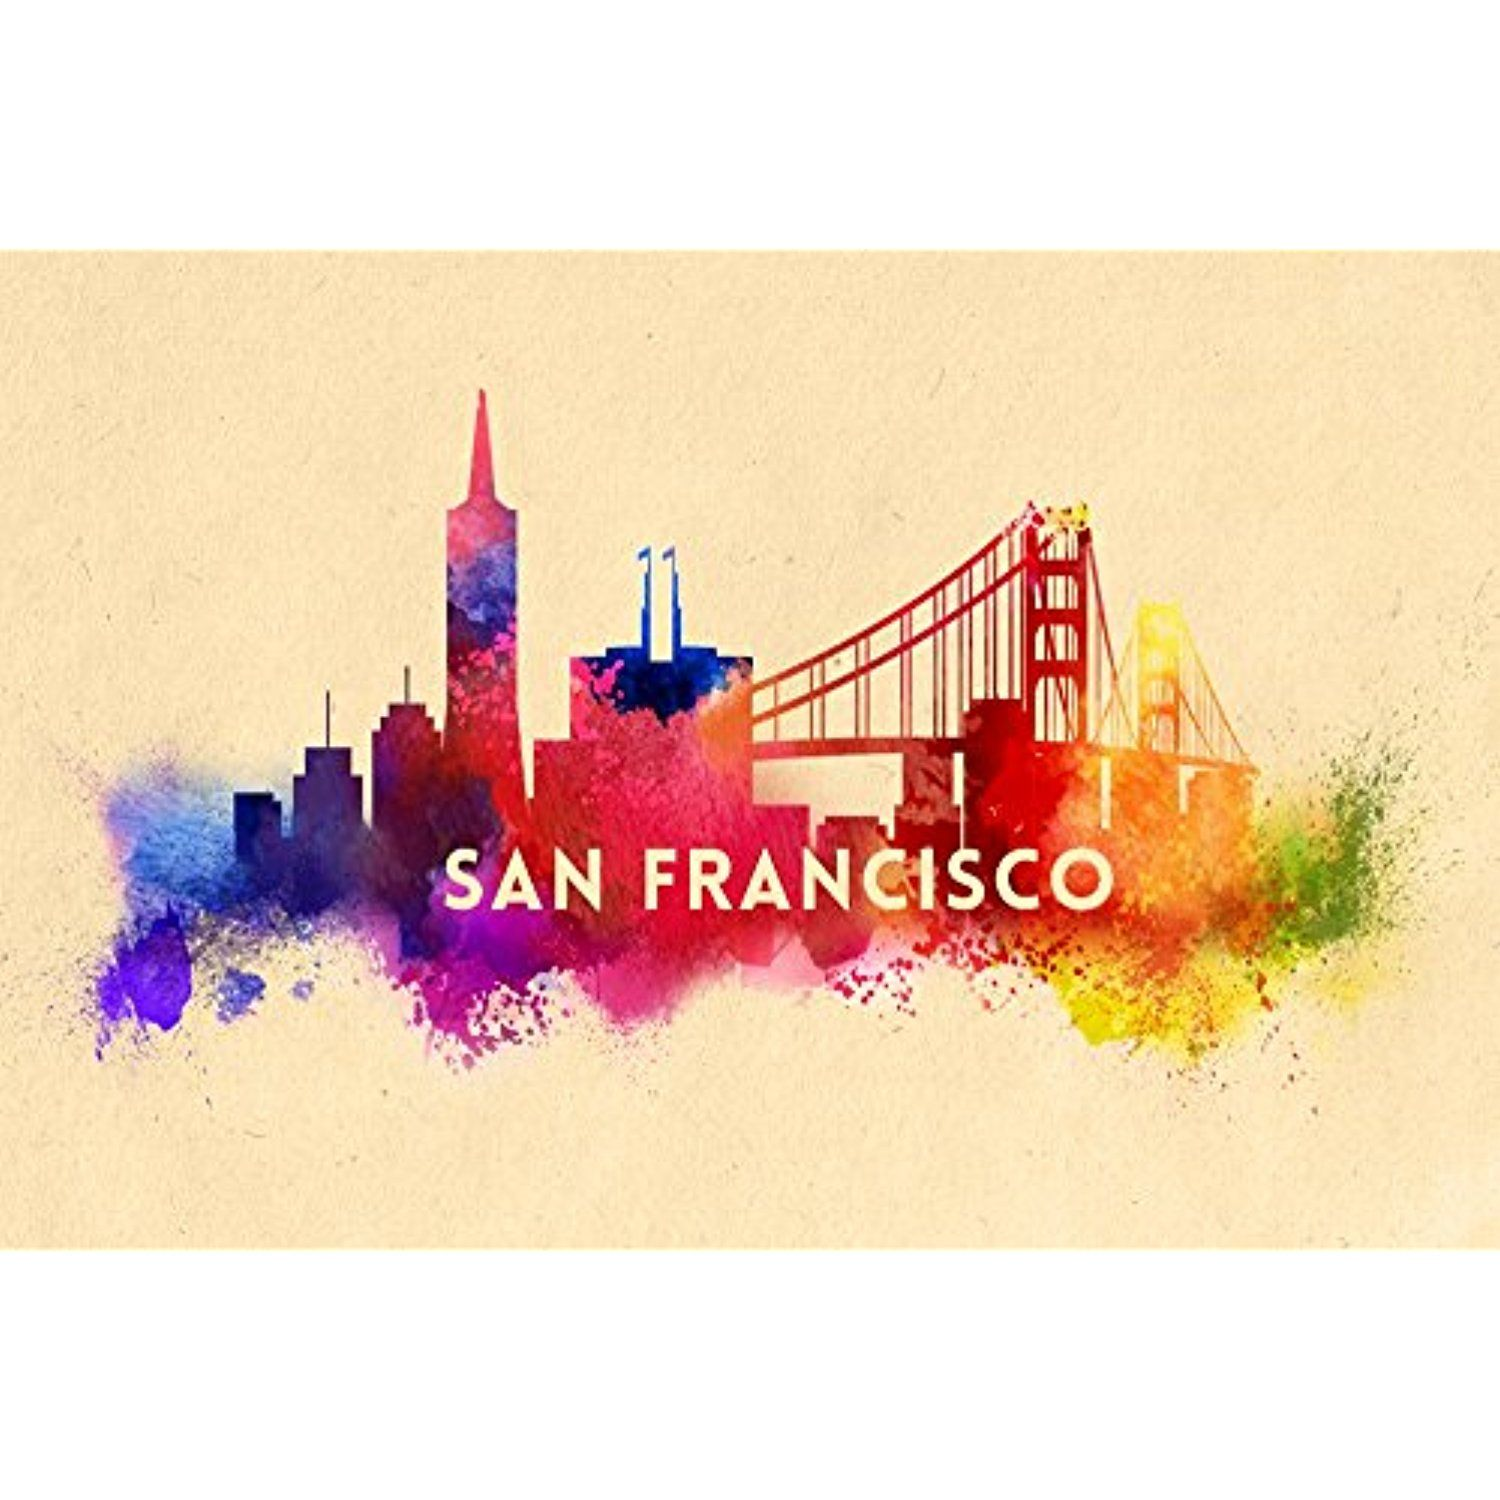 San Francisco, California - Skyline Abstract (12x18 SIGNED Print ...